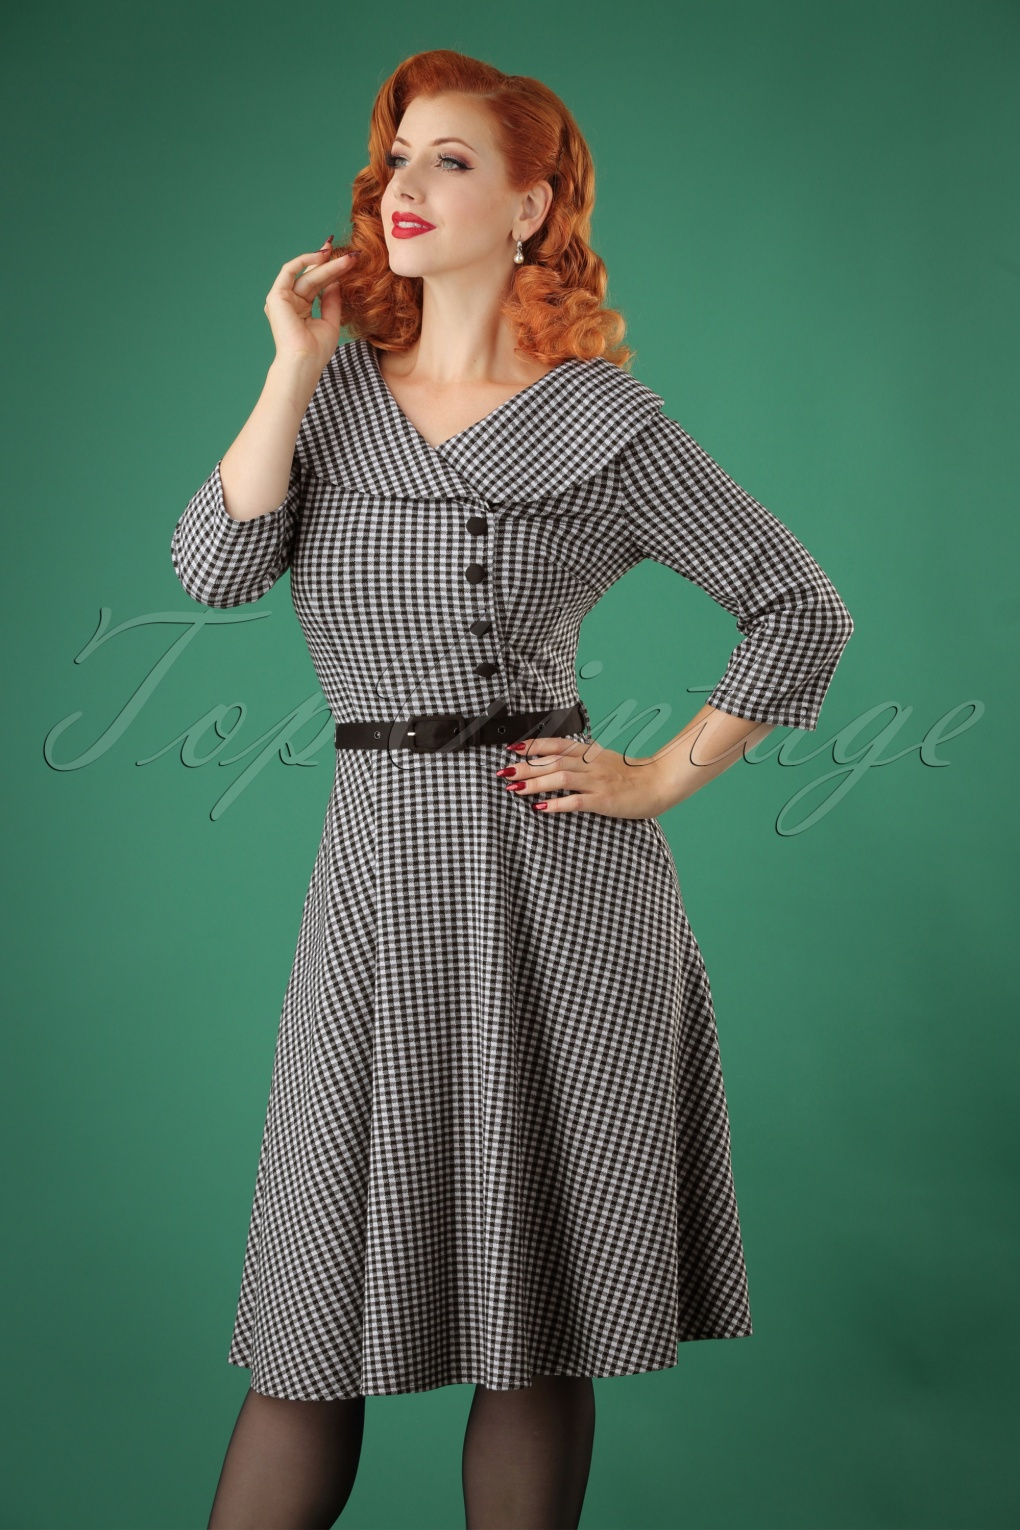 1950s Dresses, 50s Dresses | 1950s Style Dresses 50s Aubrey Houndstooth Flared Dress in Black £59.62 AT vintagedancer.com